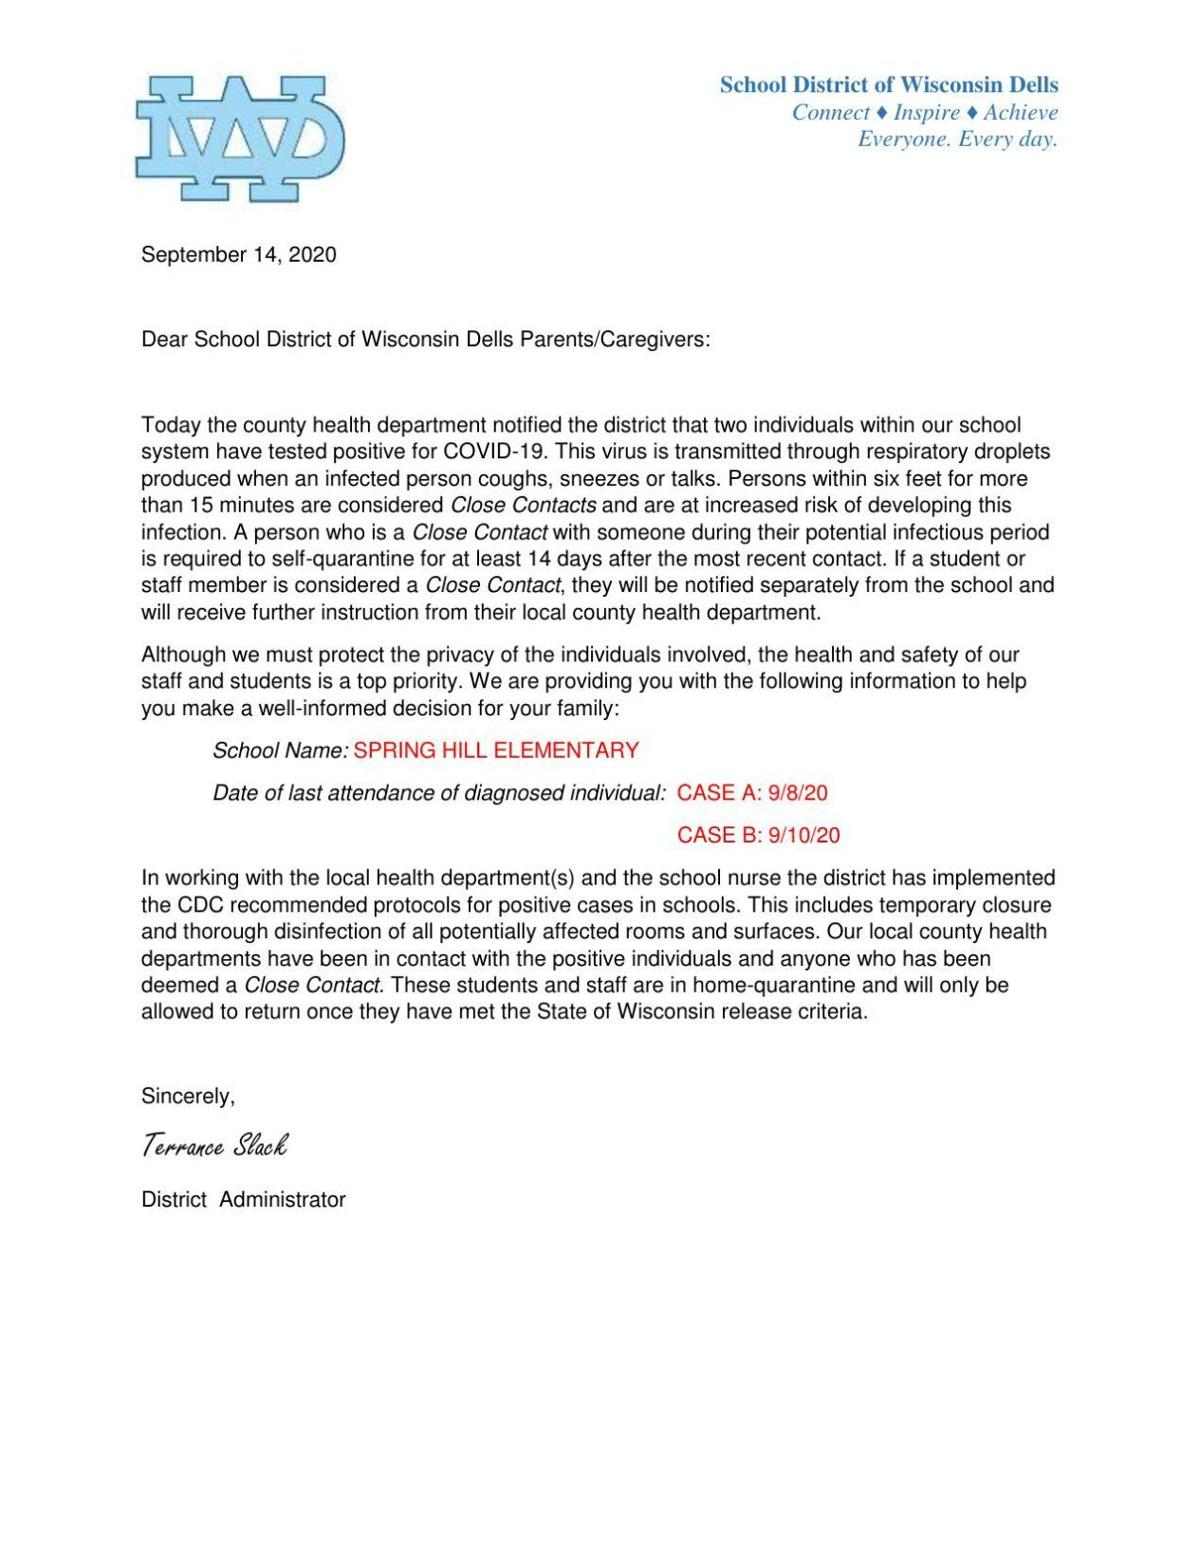 Letter to Parents of Spring Hill Elementary School COVID-19 cases